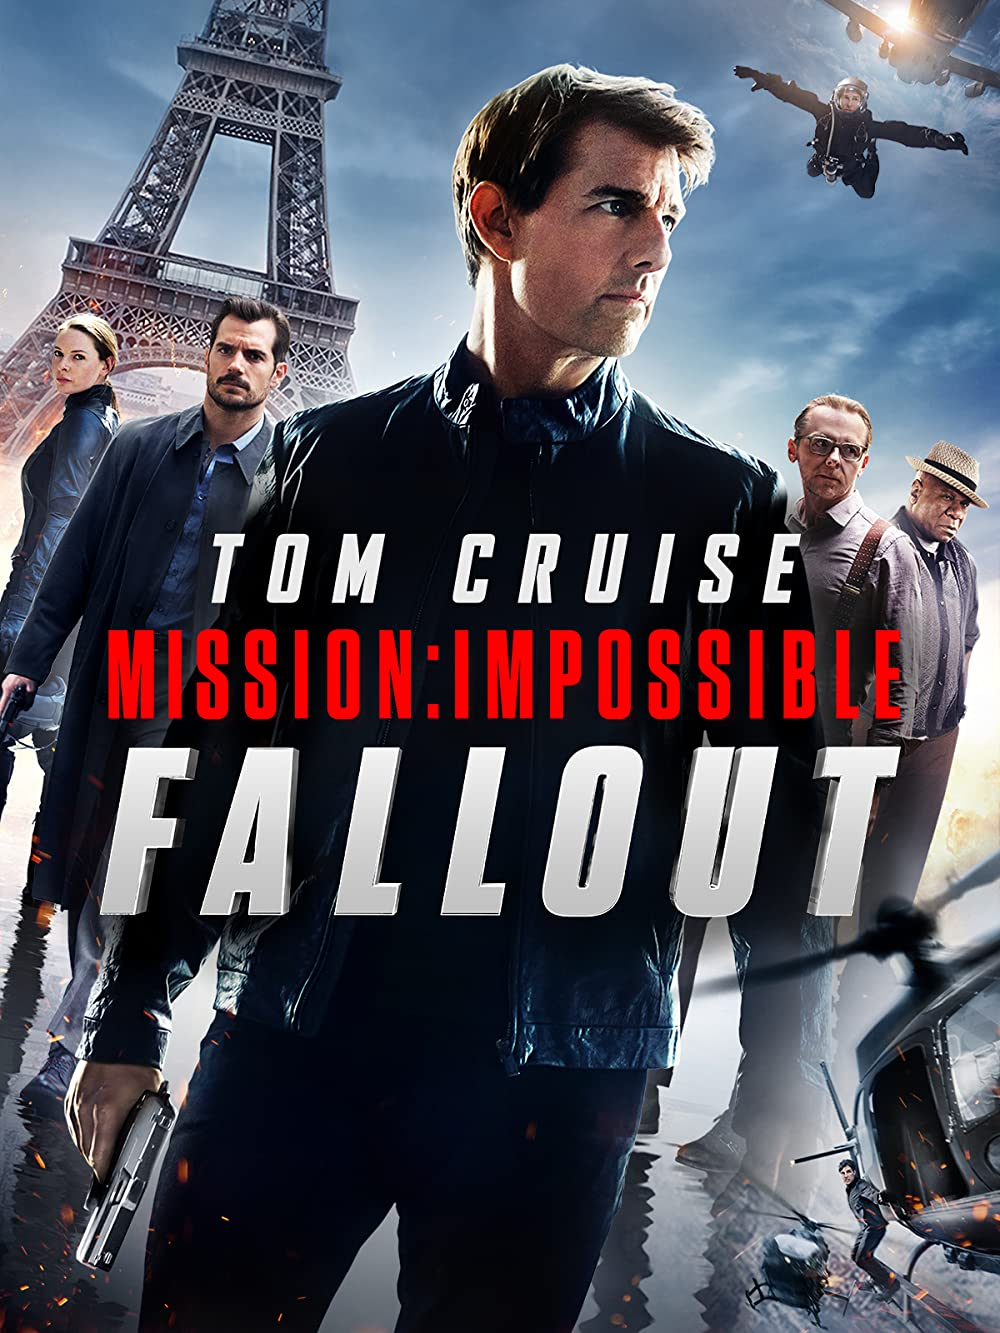 Poster film Mission: Impossible Fallout.